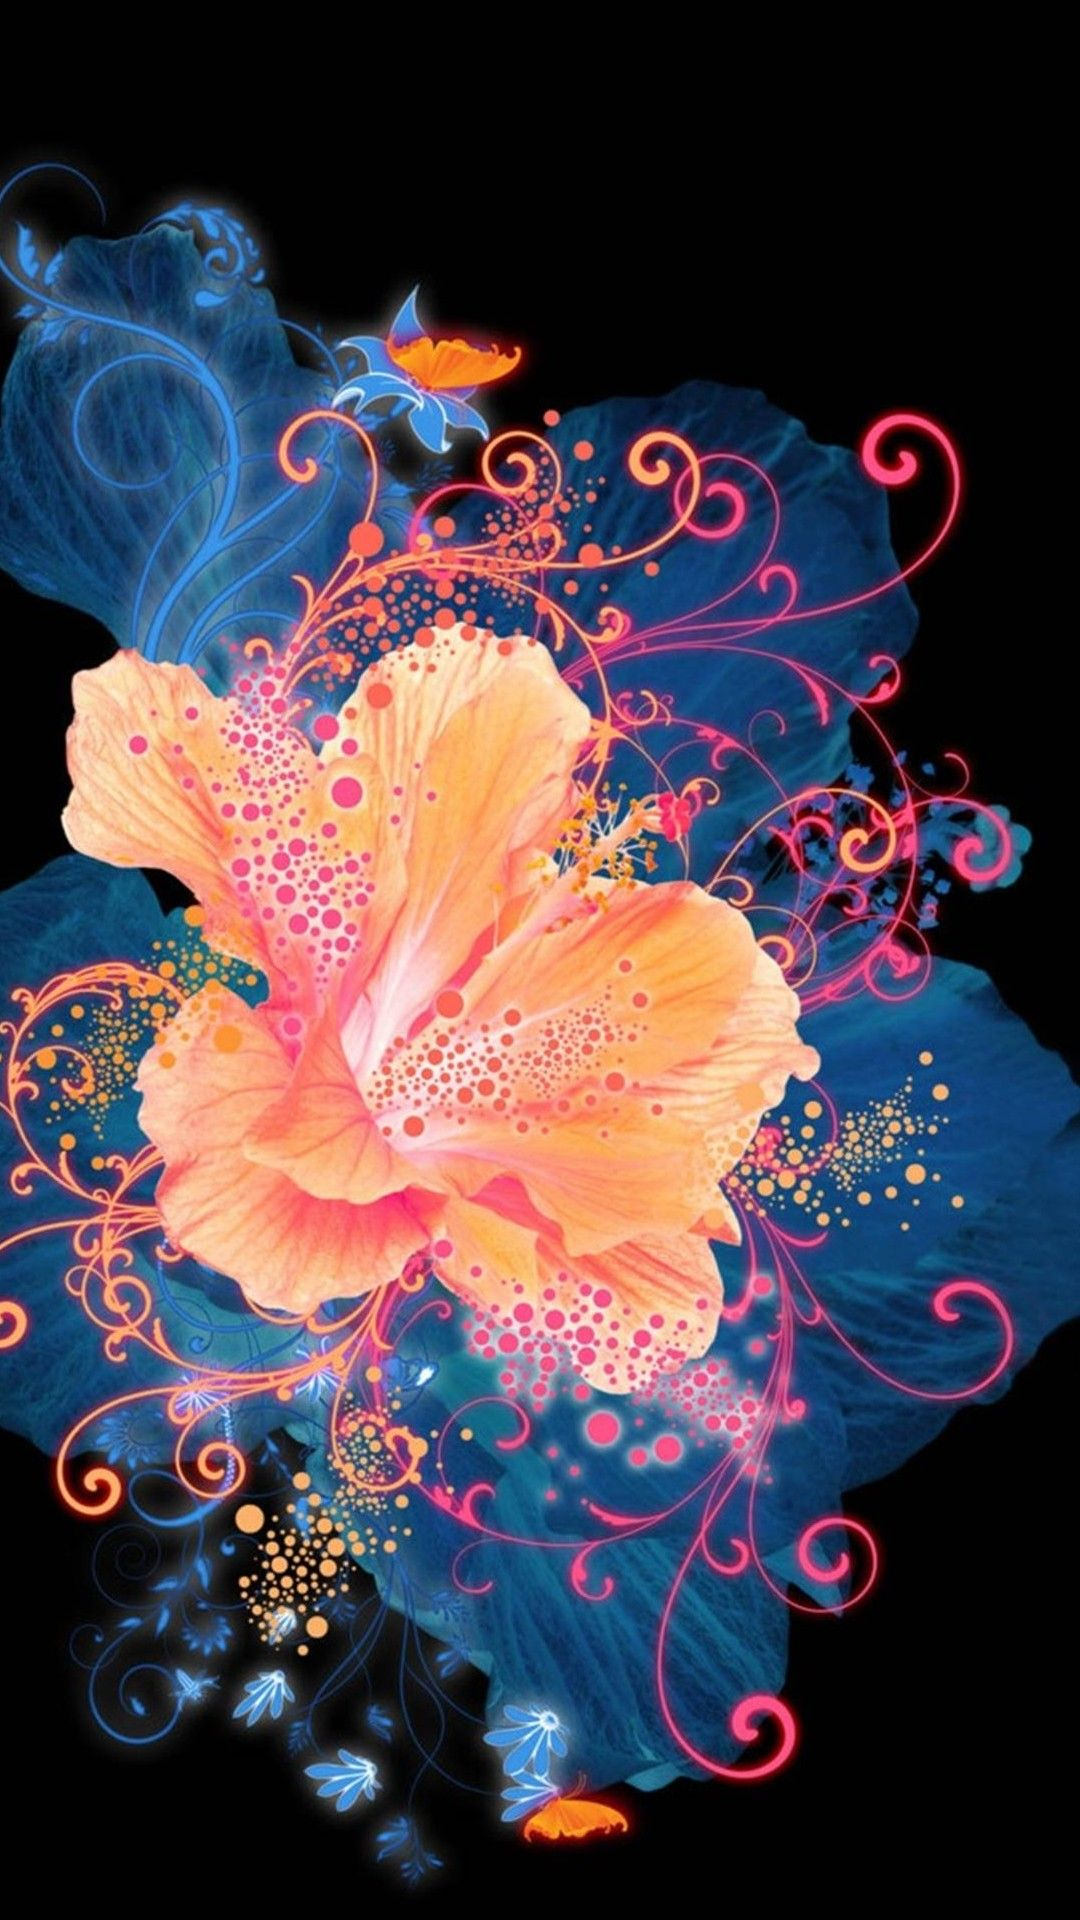 Colorful Samsung Galaxy Note 3 Wallpapers 166 Samsung Galaxy Note 3 Wallpapers Flower Wallpaper Flower Art Abstract Flowers